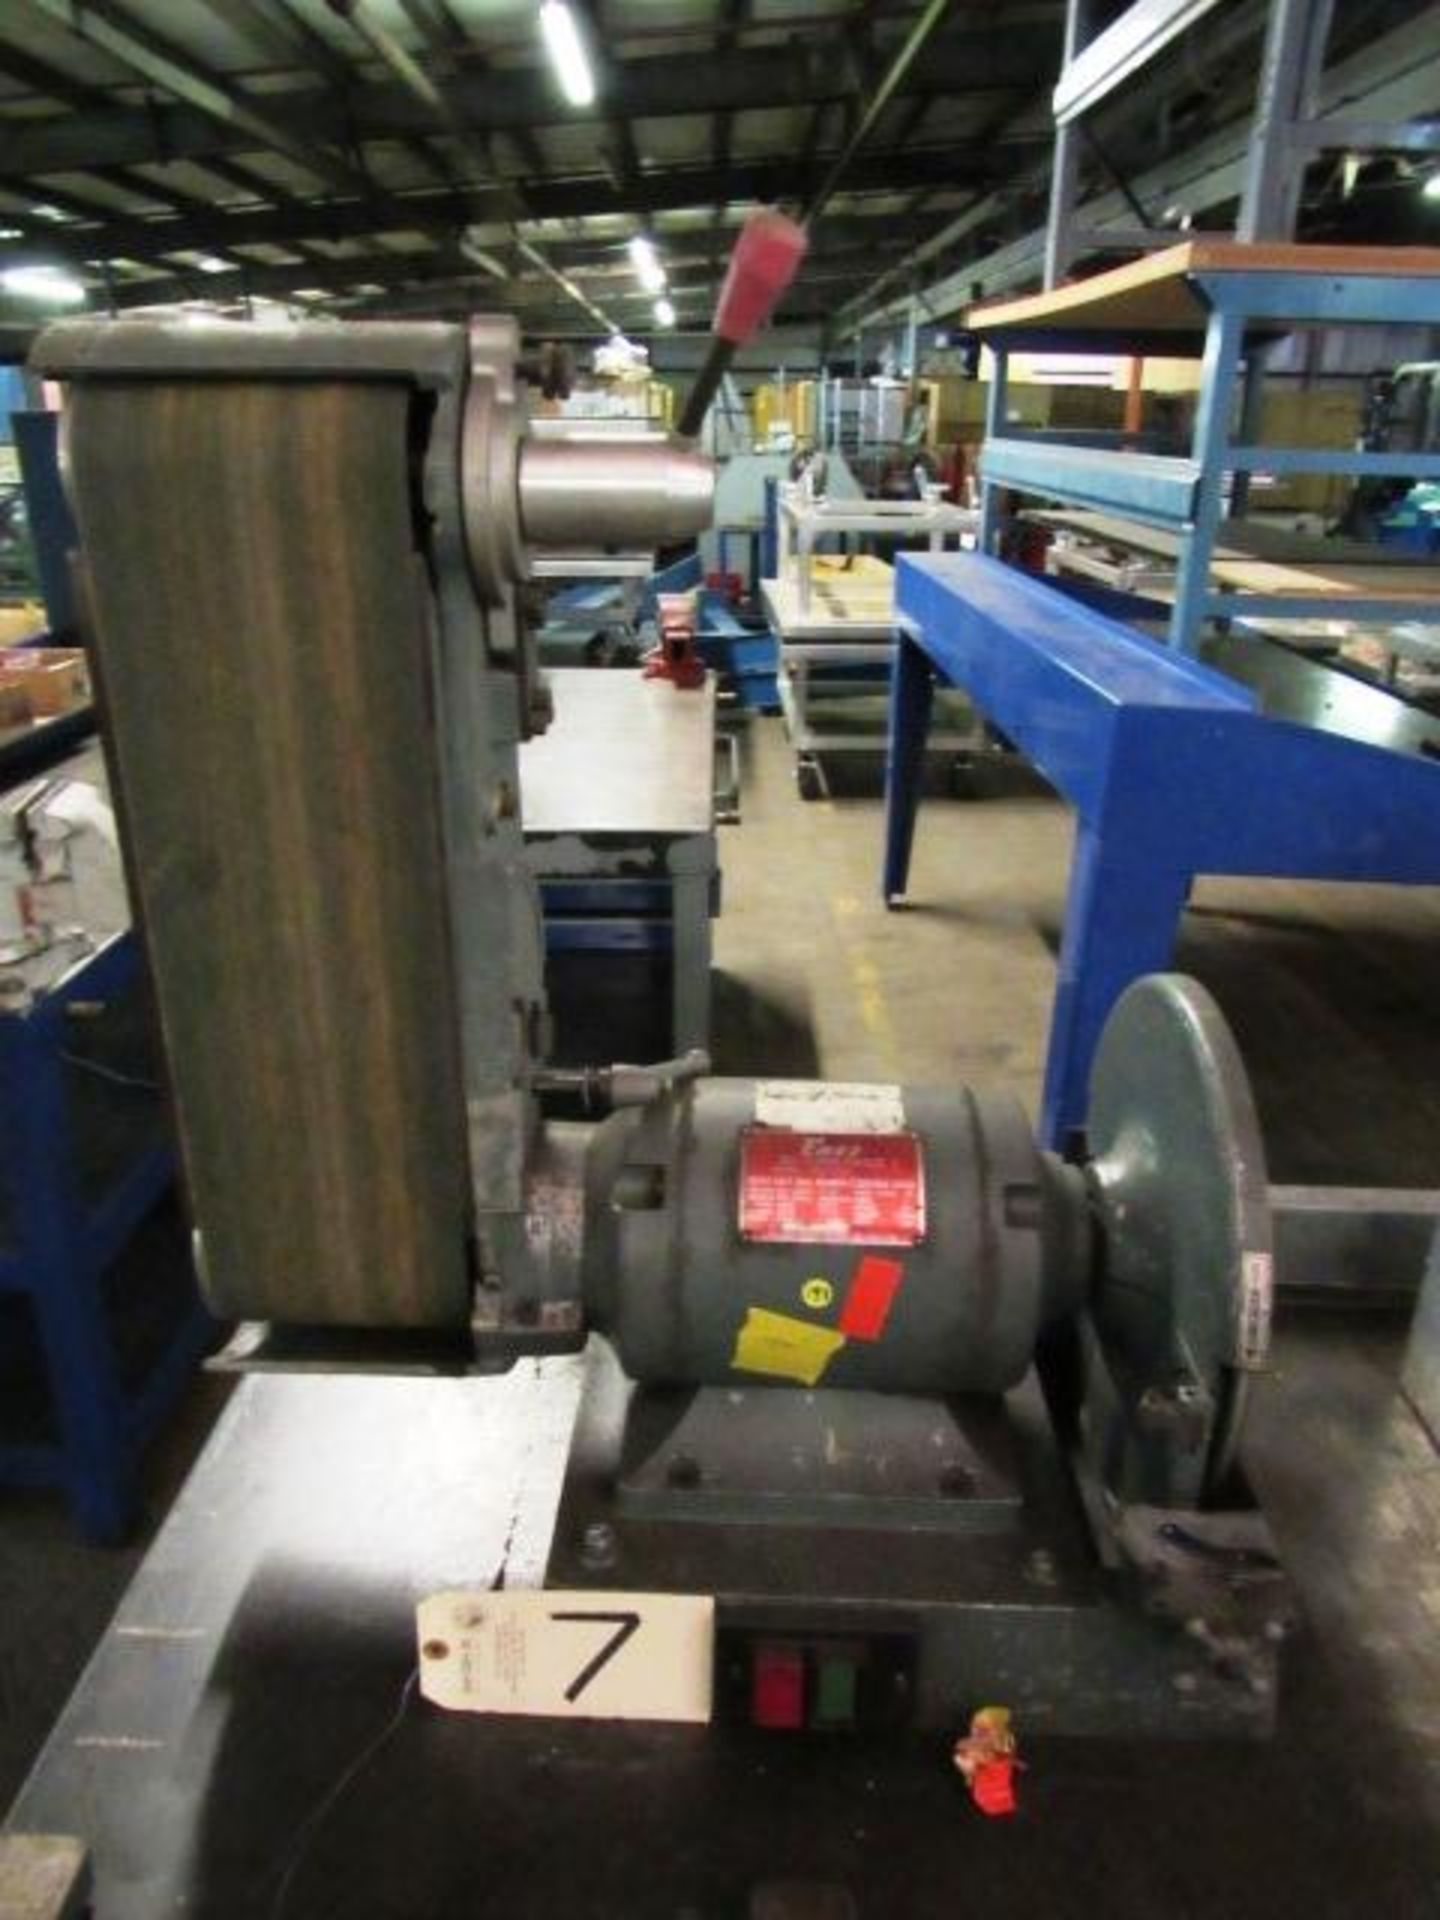 Lot 7 - Enco Model 163-4700 6'' x 12'' Bench Grinder / Sander, sn:908006